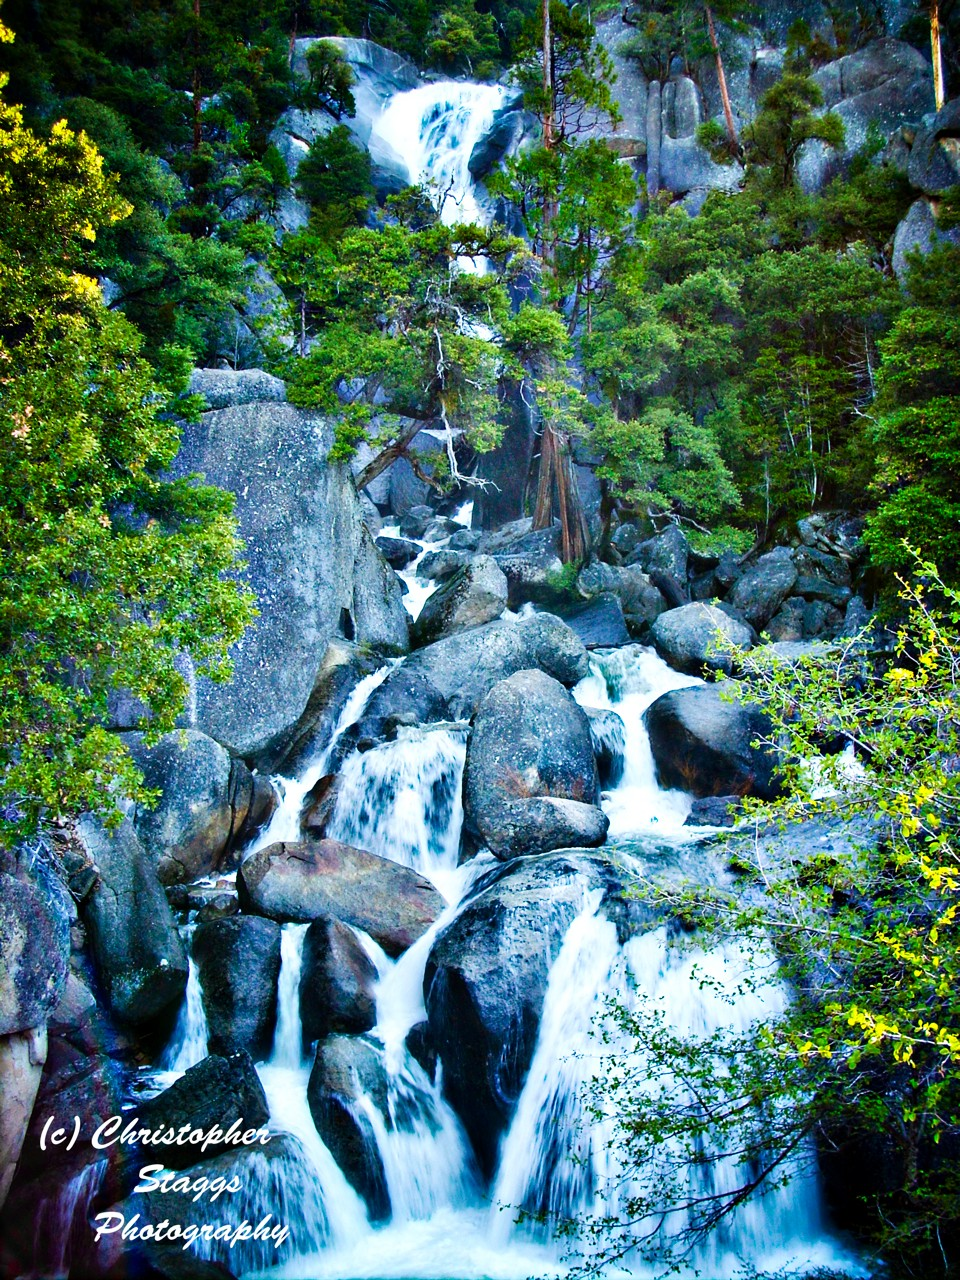 yosemite ca author staggs christopher